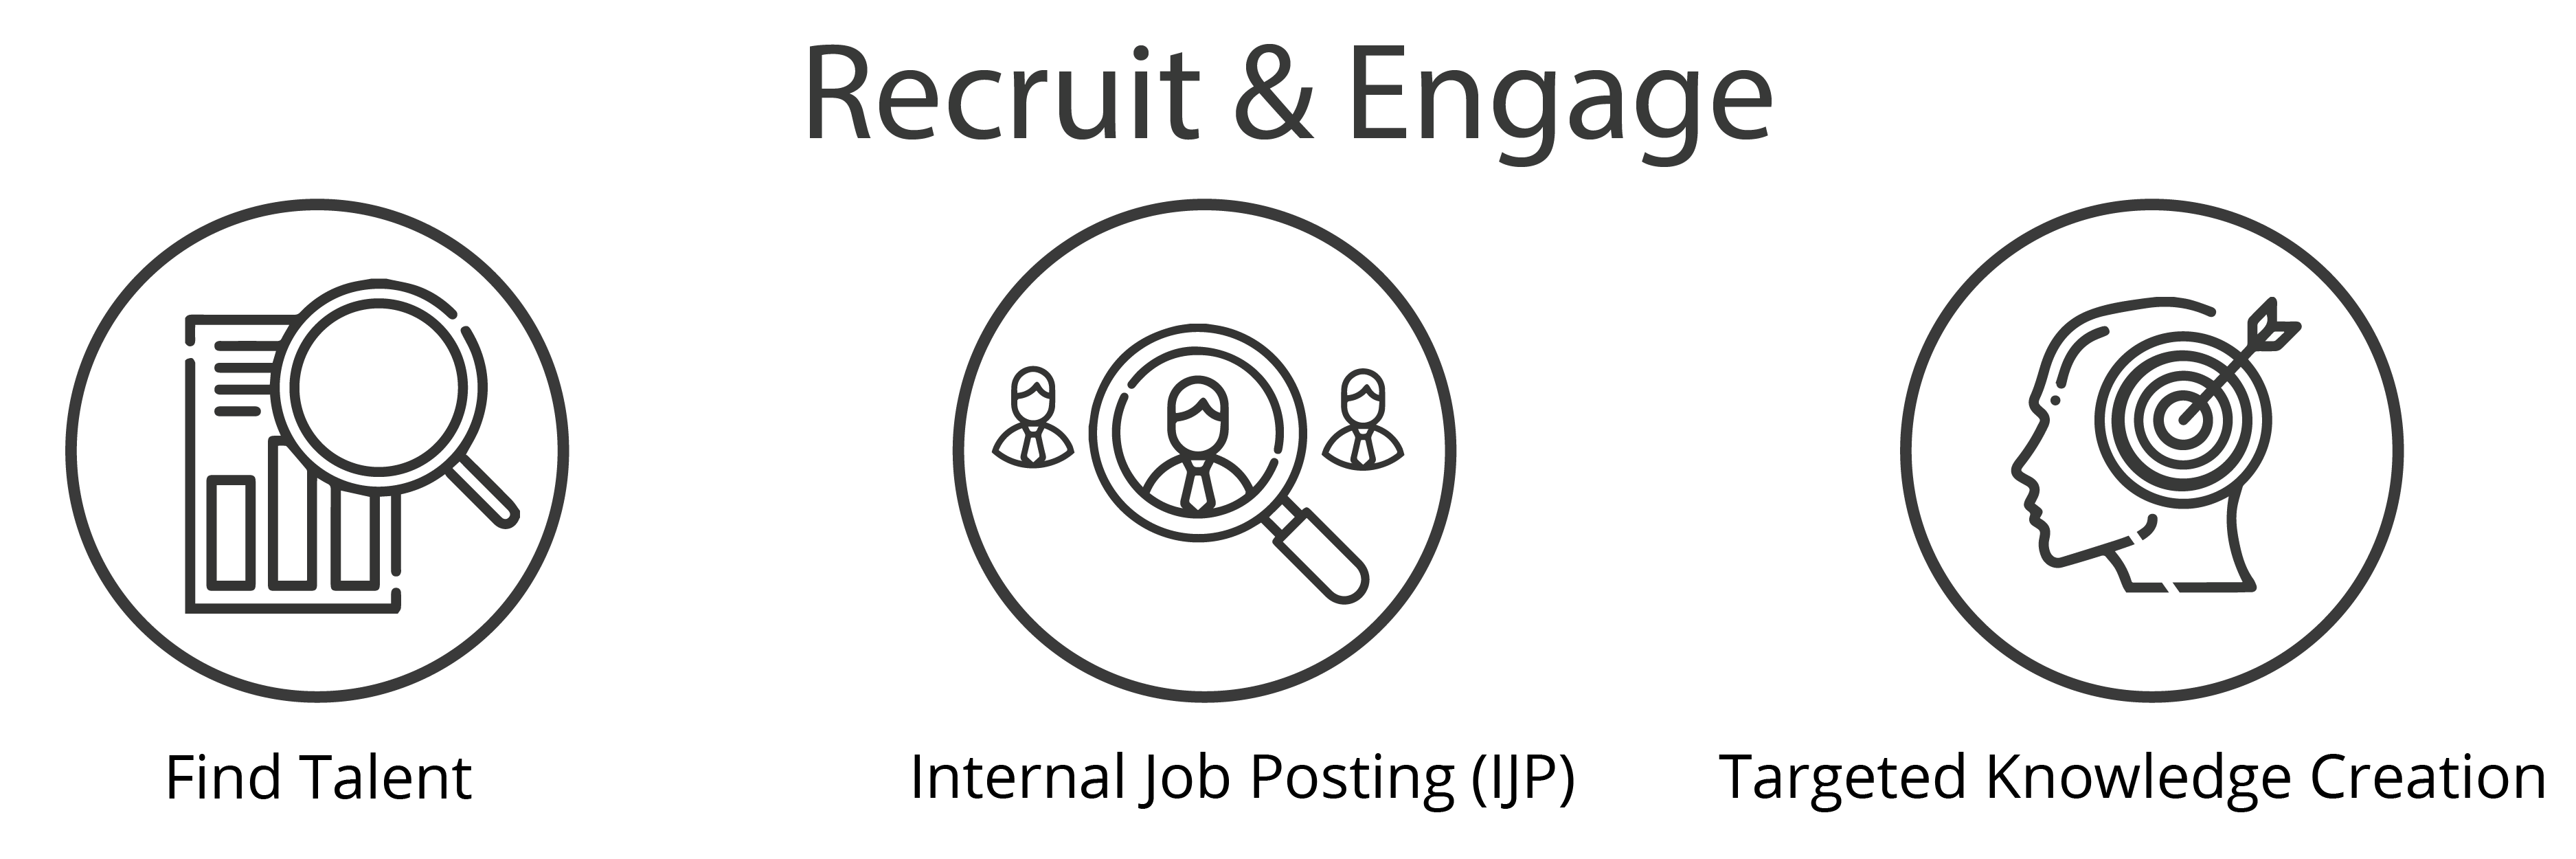 Ways how Vneda can help in recruitment: find talent, internal postings, targeted knowledge creation